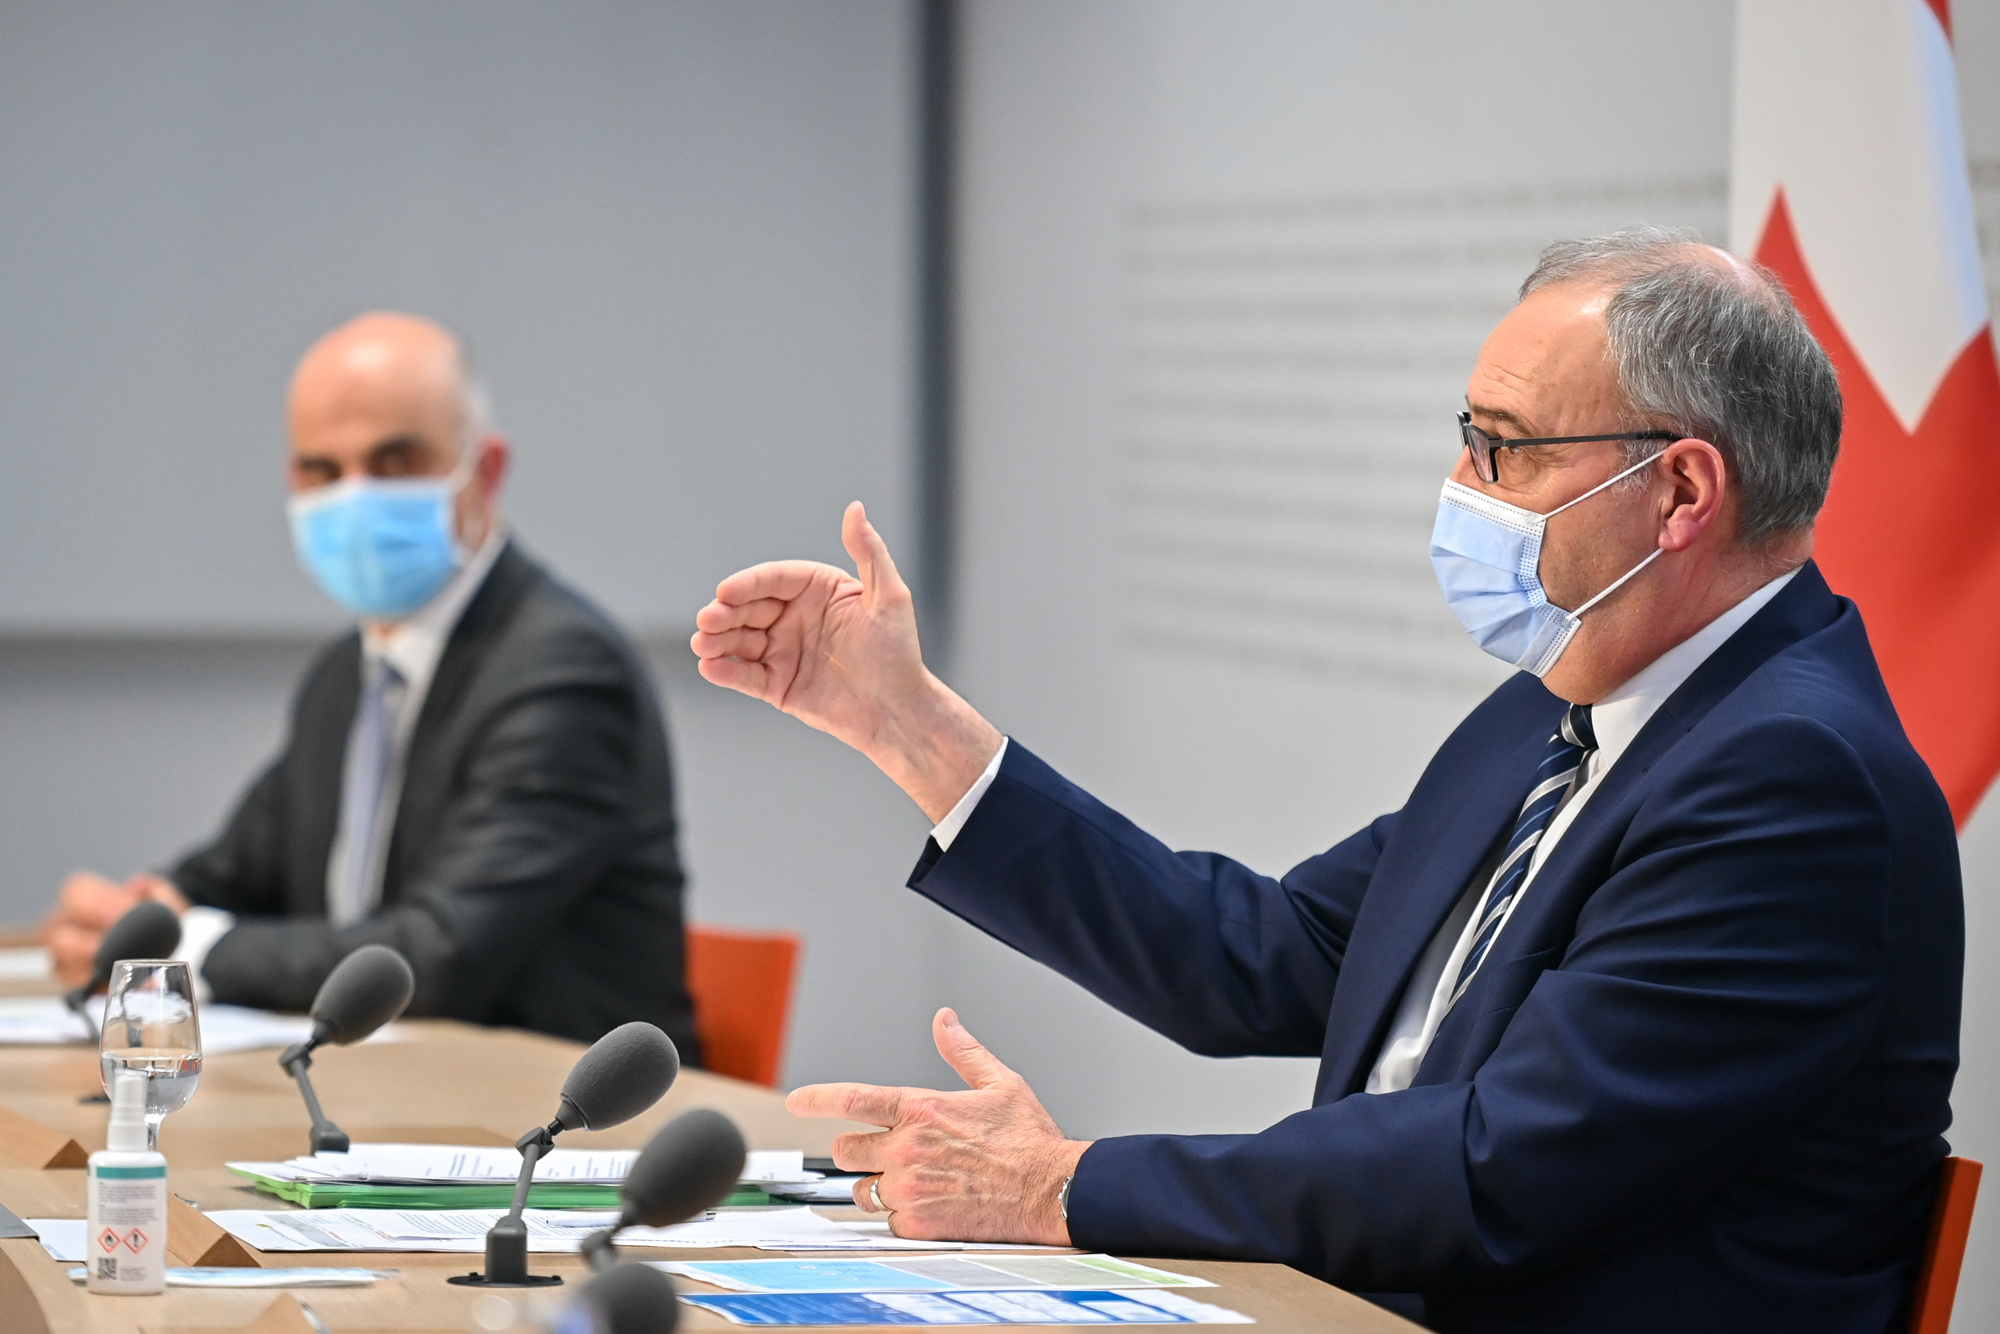 Swiss President Guy Parmelin, right, speaks next to Swiss Interior and Health Minister Alain Berset during a press conference on February 24 in Bern, Switzerland.